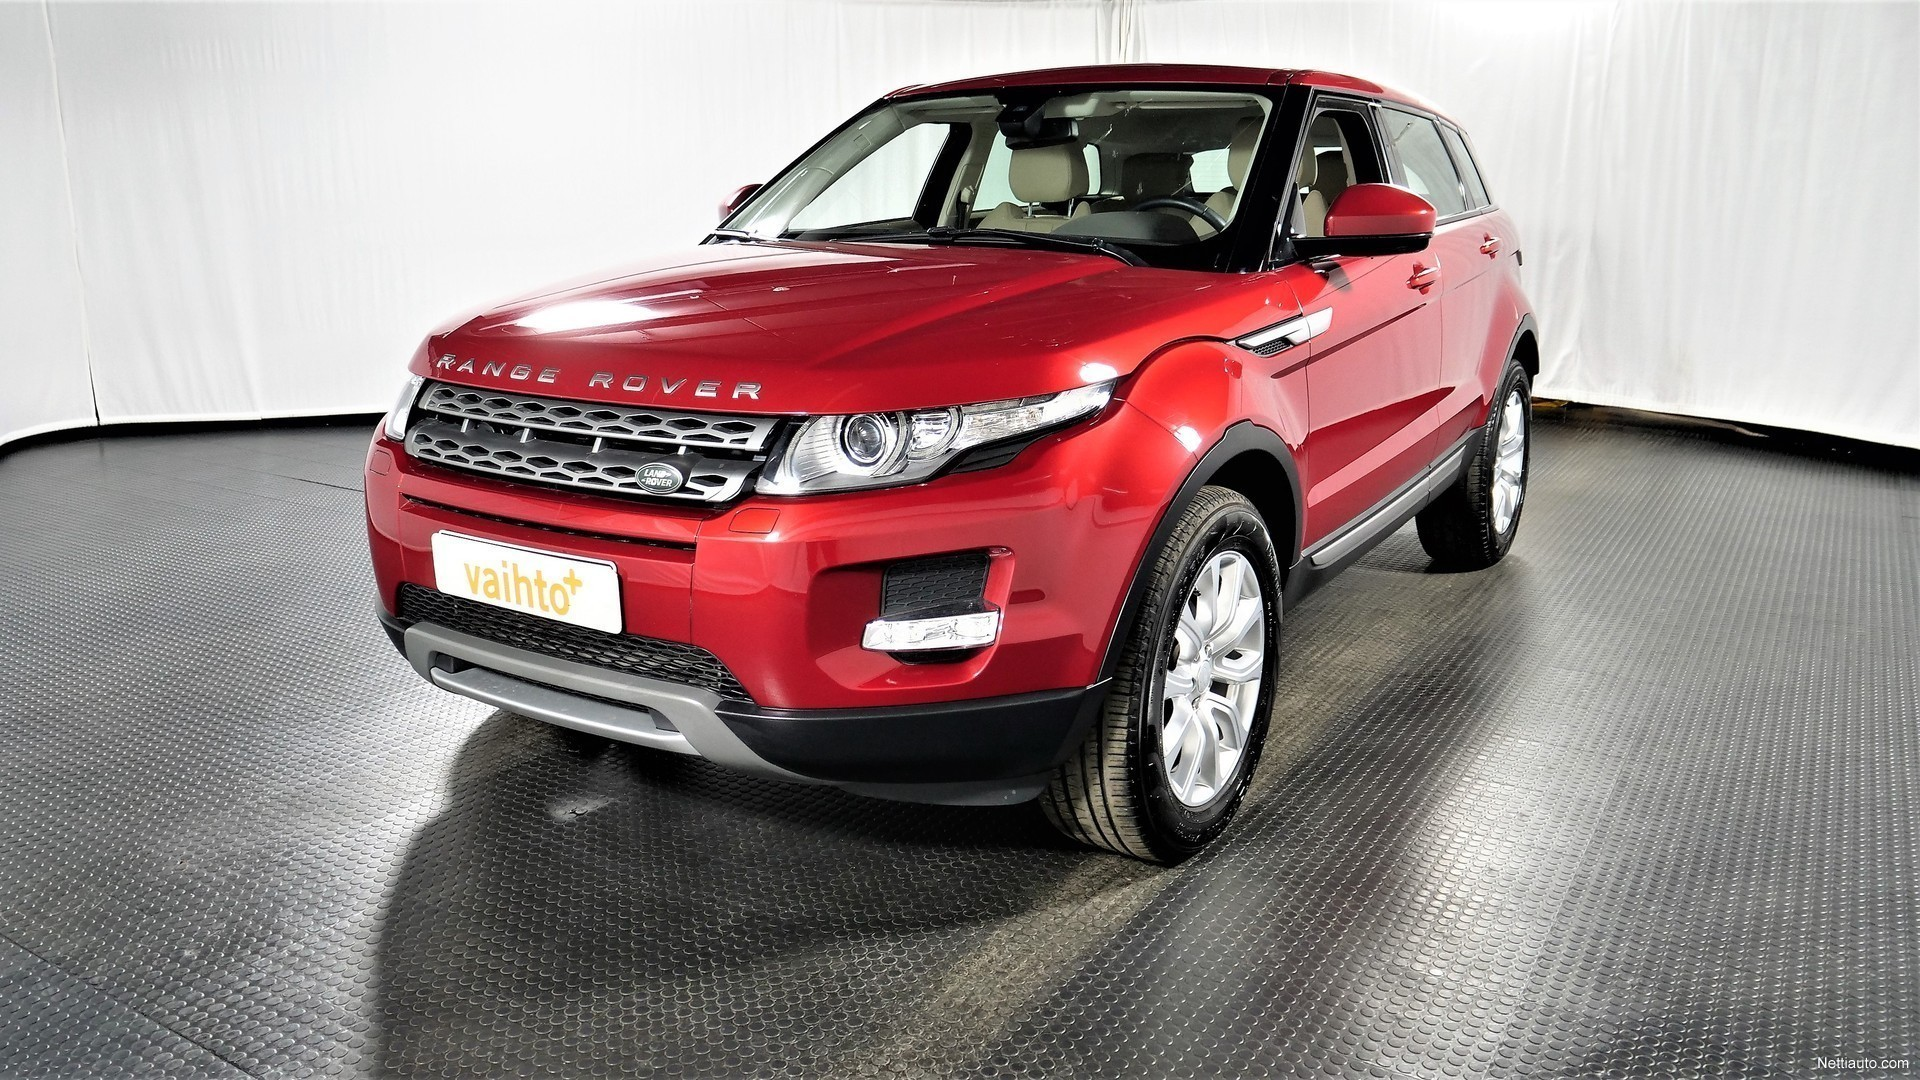 Land Rover Range Rover Evoque 2,2 SD4 Pure A (MY14) 4x4 2014 - Used